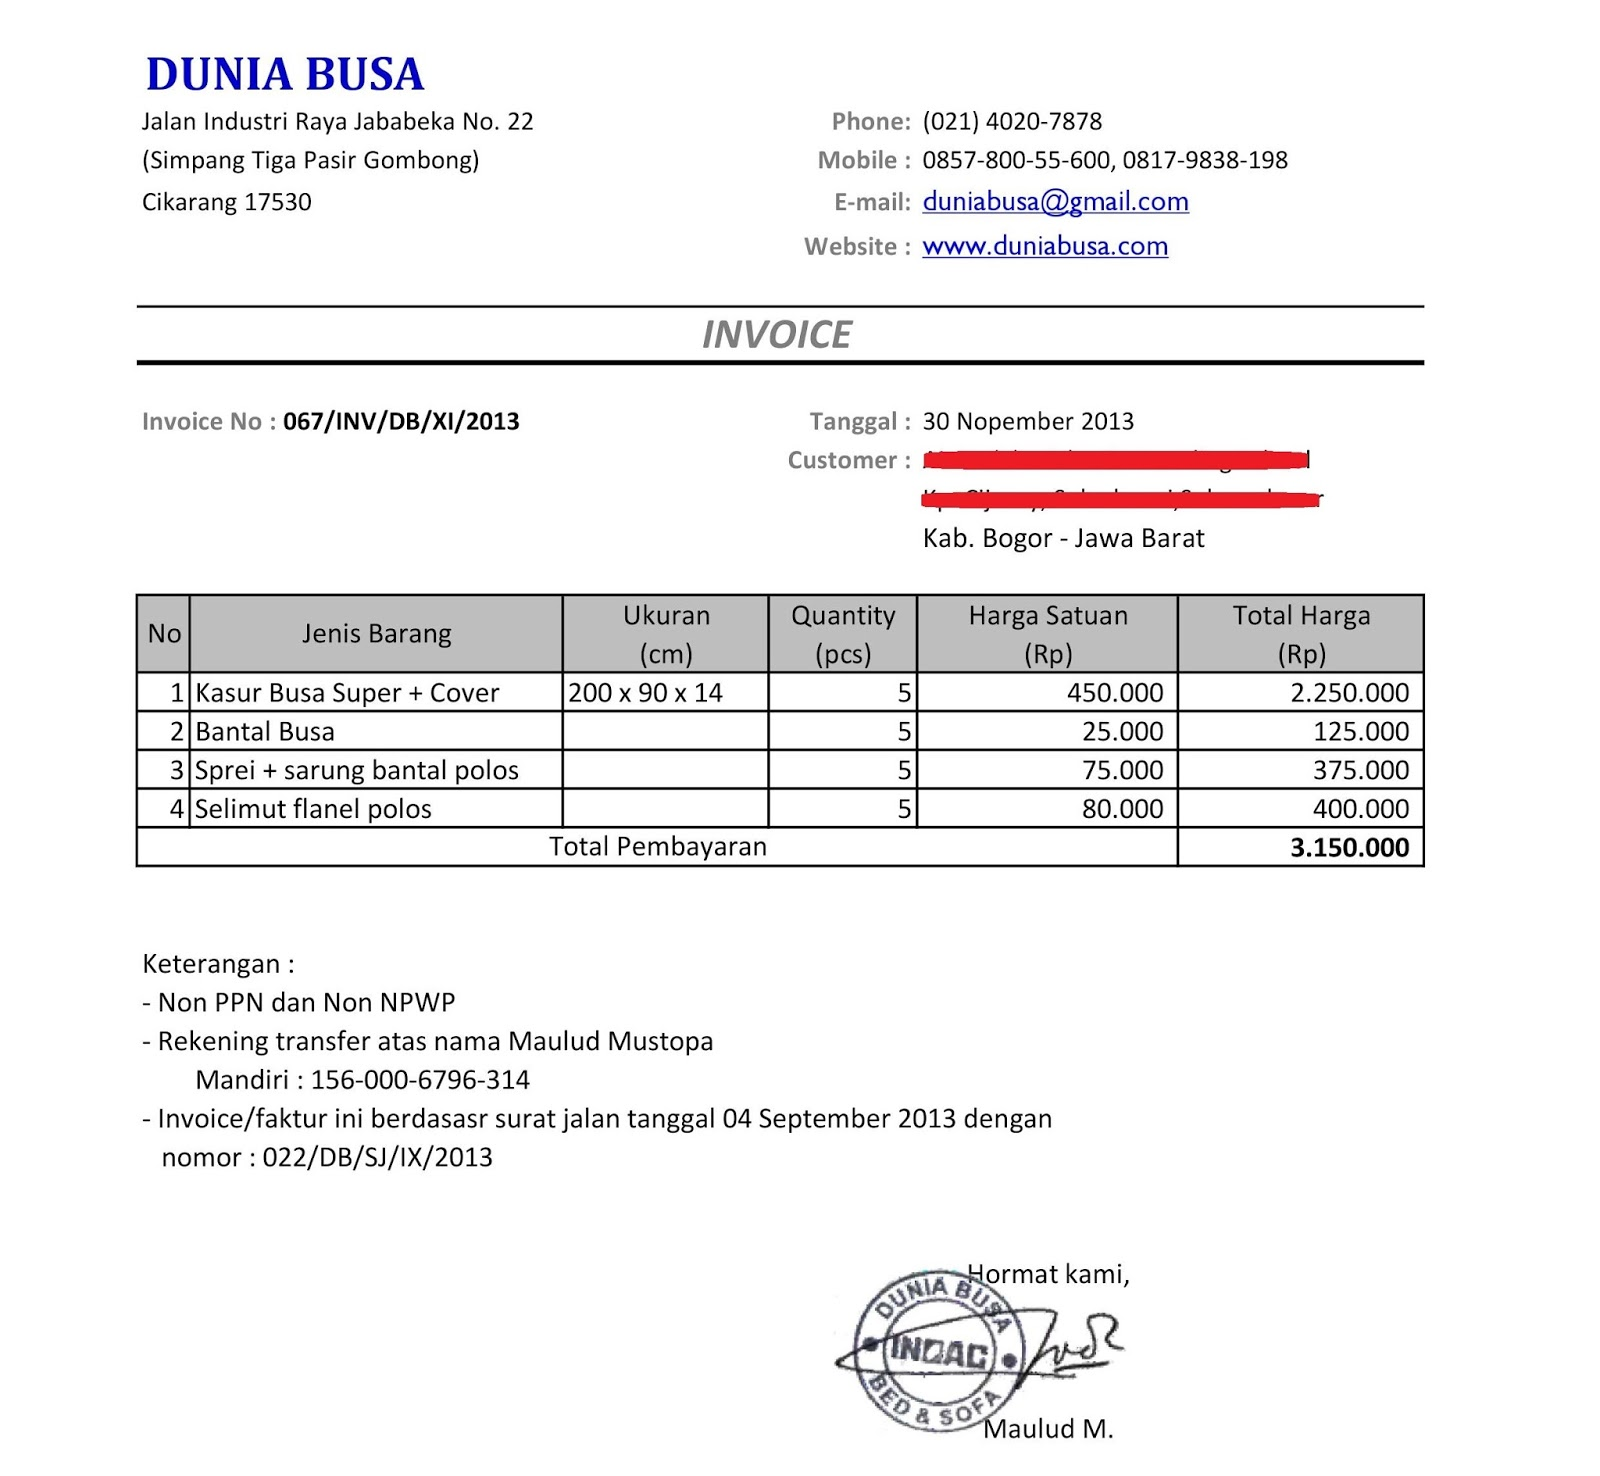 Musclebuildingtipsus  Scenic Free Invoice Online  Create Invoice Online  Invoice Template  With Interesting Contoh Format Invoice Atau Surat Tagihan  Brankas Arsip  Free Invoice Online With Cute Invoice Rejection Letter Also Copy Of Invoices In Addition Invoice Processing Procedure And Dhl Proforma Invoice Template As Well As Template Invoice Uk Additionally Tax Invoice Format From Sklepco With Musclebuildingtipsus  Interesting Free Invoice Online  Create Invoice Online  Invoice Template  With Cute Contoh Format Invoice Atau Surat Tagihan  Brankas Arsip  Free Invoice Online And Scenic Invoice Rejection Letter Also Copy Of Invoices In Addition Invoice Processing Procedure From Sklepco